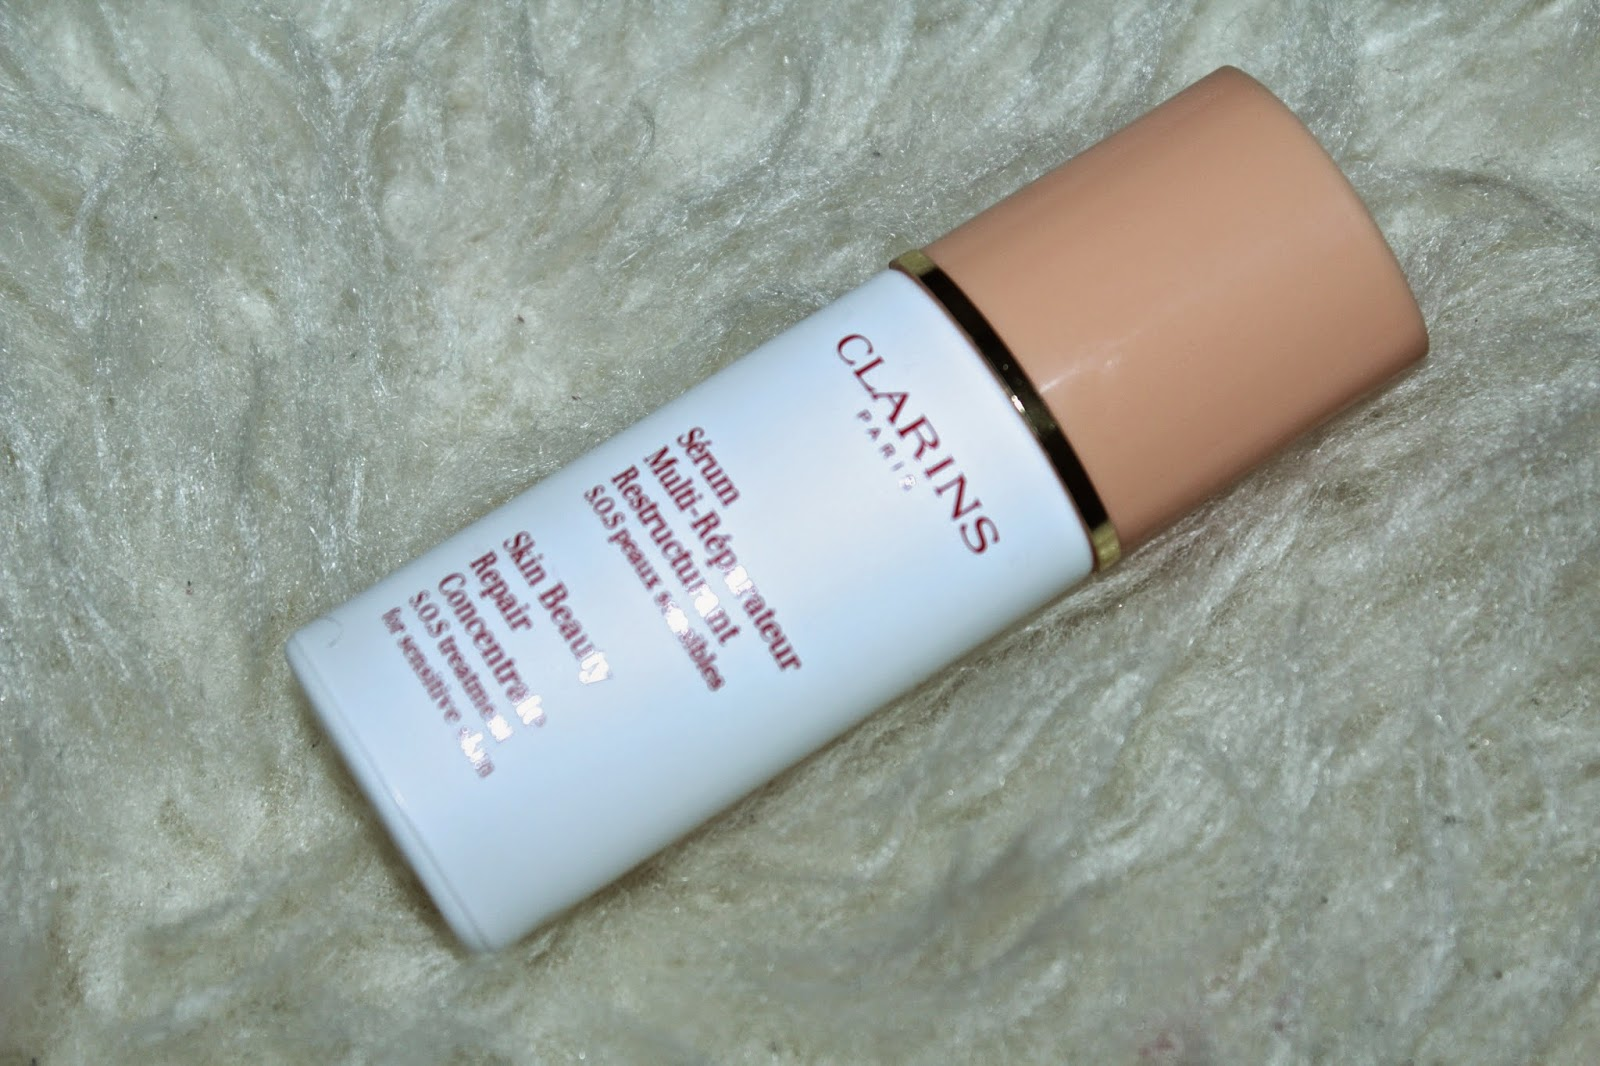 Skin Beauty Repair Concentrate - S.O.S Treatment for Sensitive Skin by Clarins #13